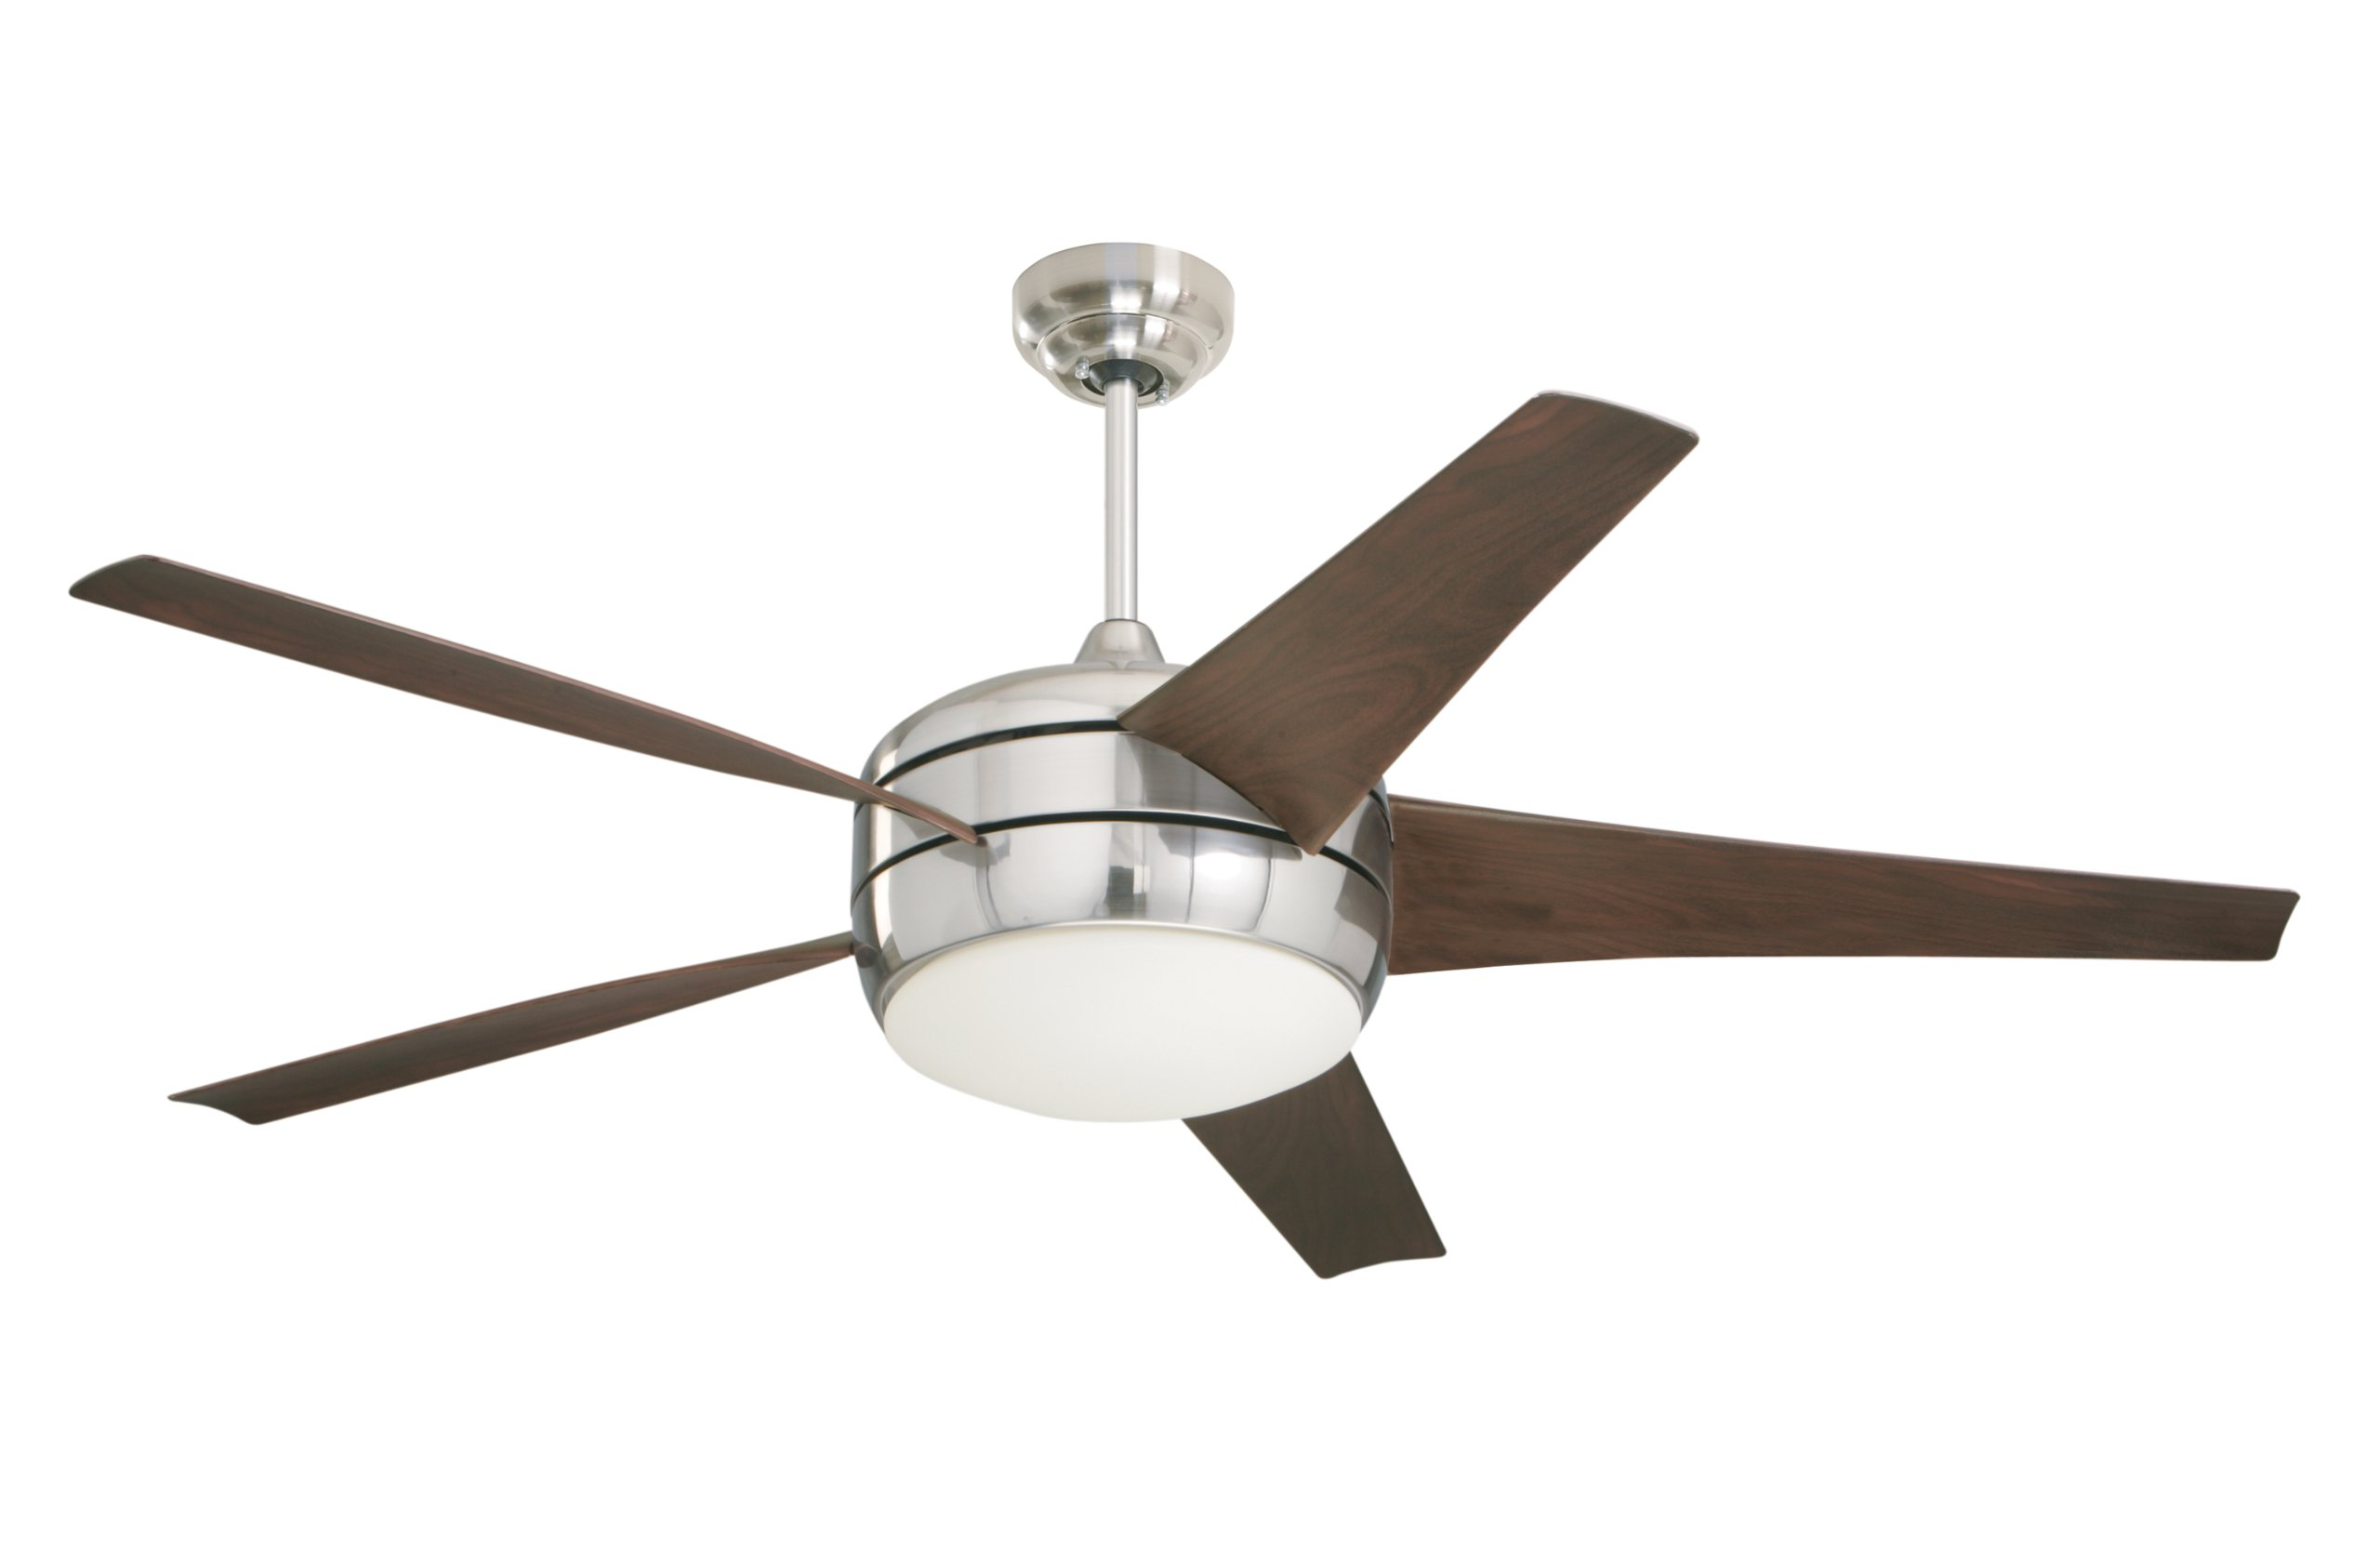 Emerson Ceiling Fans CF955BS Midway Eco Modern Energy Star Ceiling Fan With Light And Remote, 54-Inch Blades, Brushed Steel Finish